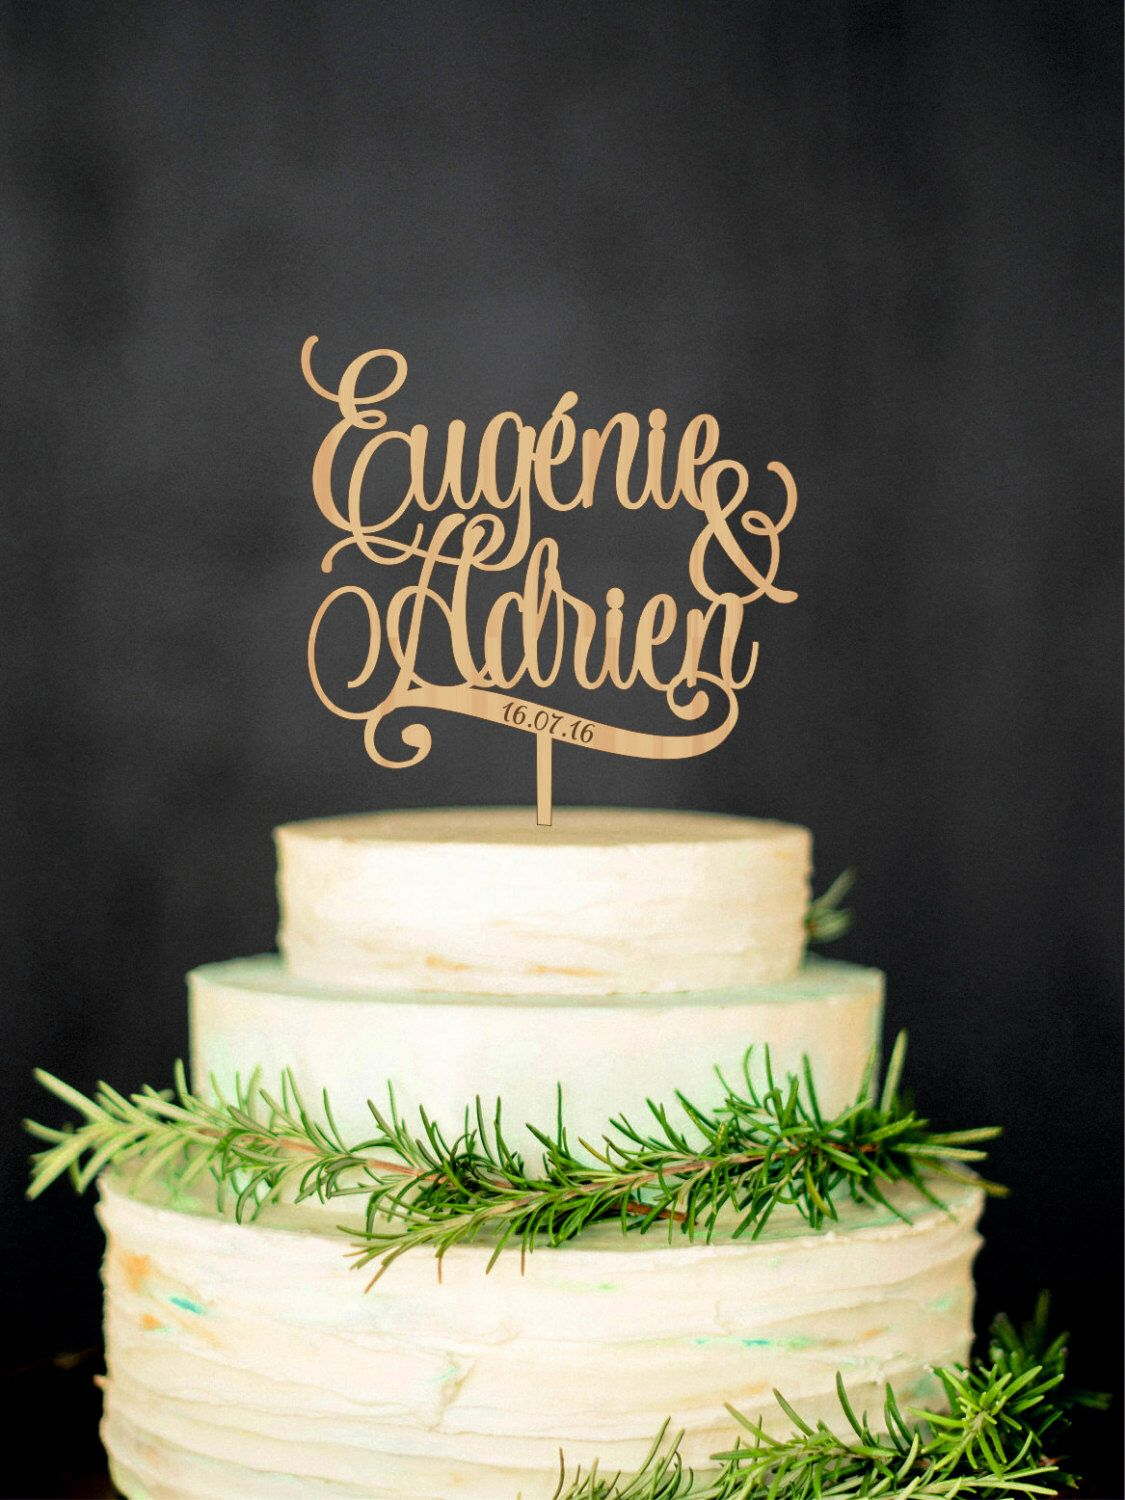 Personalized wedding cake topper with names and date custom cake wta wedding cake topper custom cake topper wood cake topper personalized names biocorpaavc Images